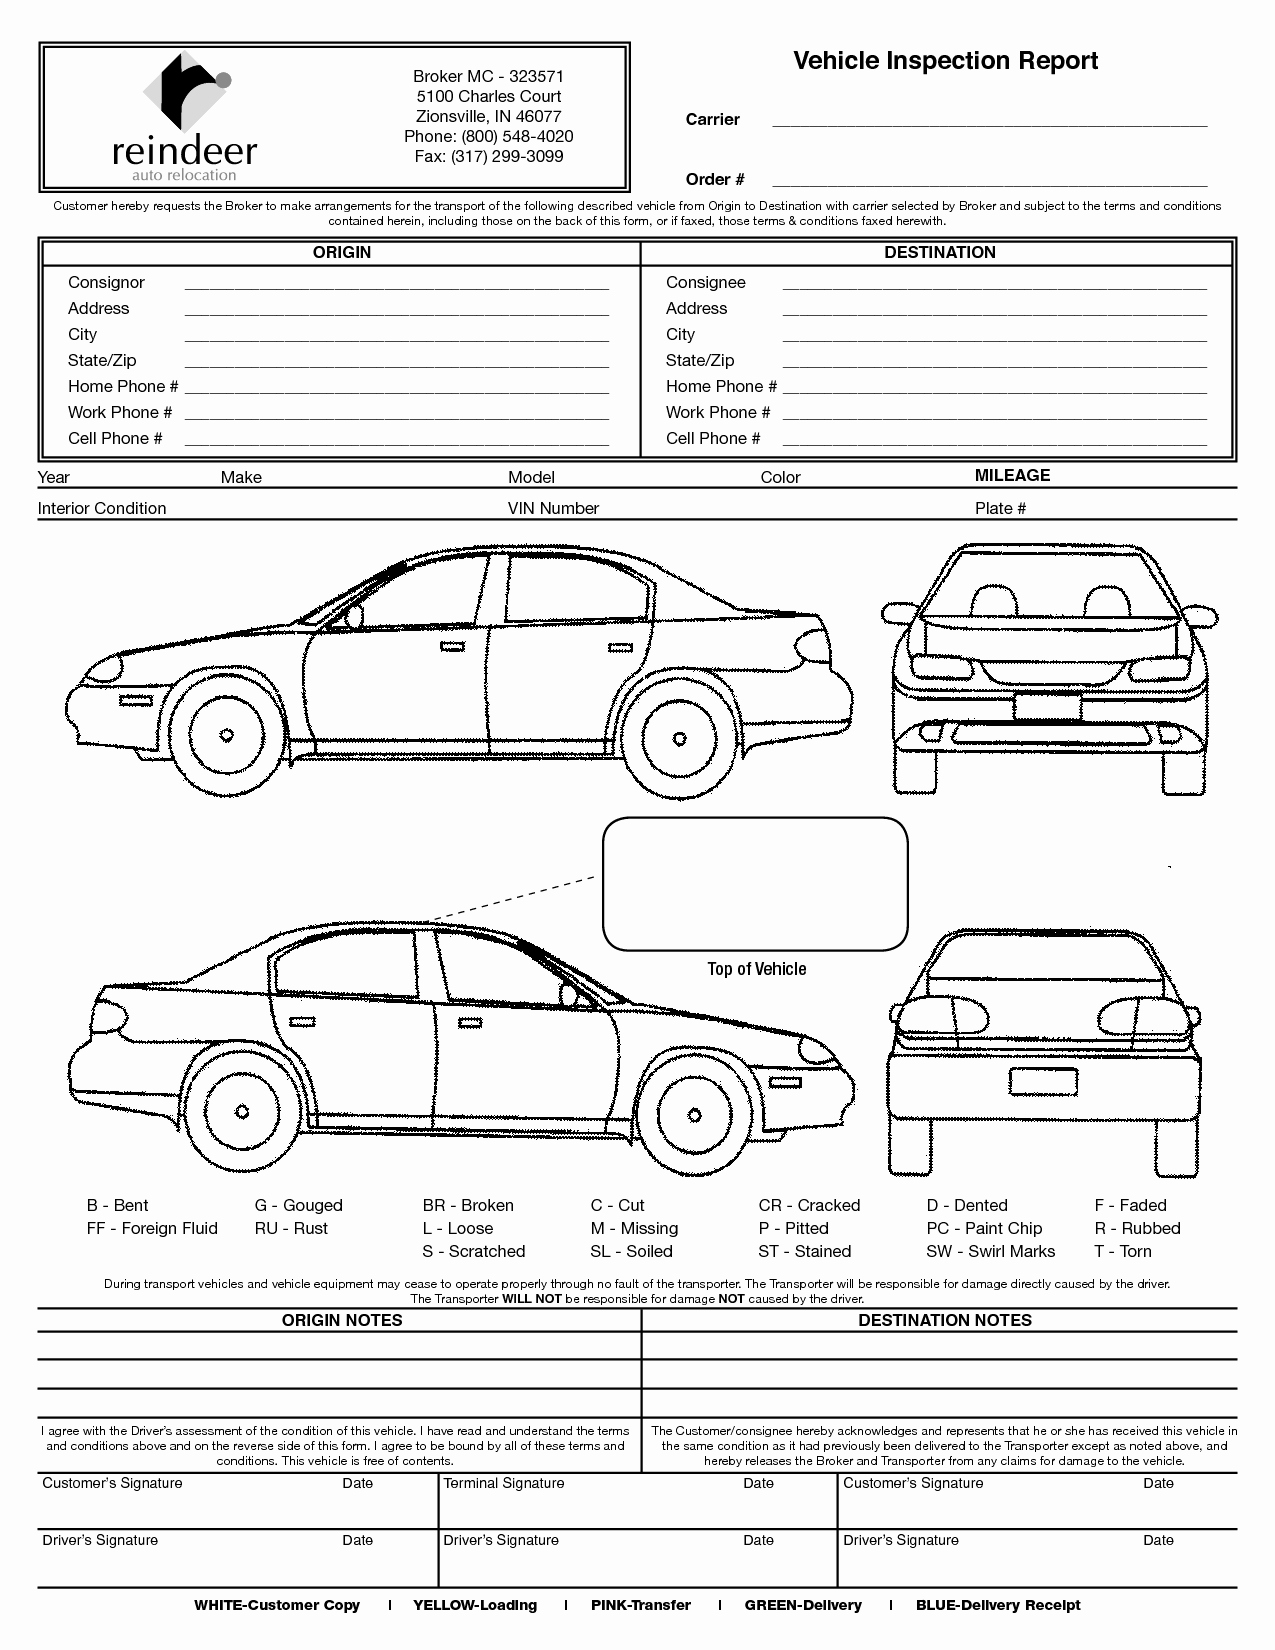 Vehicle Inspection form Template Inspirational Vehicle Check In Sheet to Pin On Pinterest